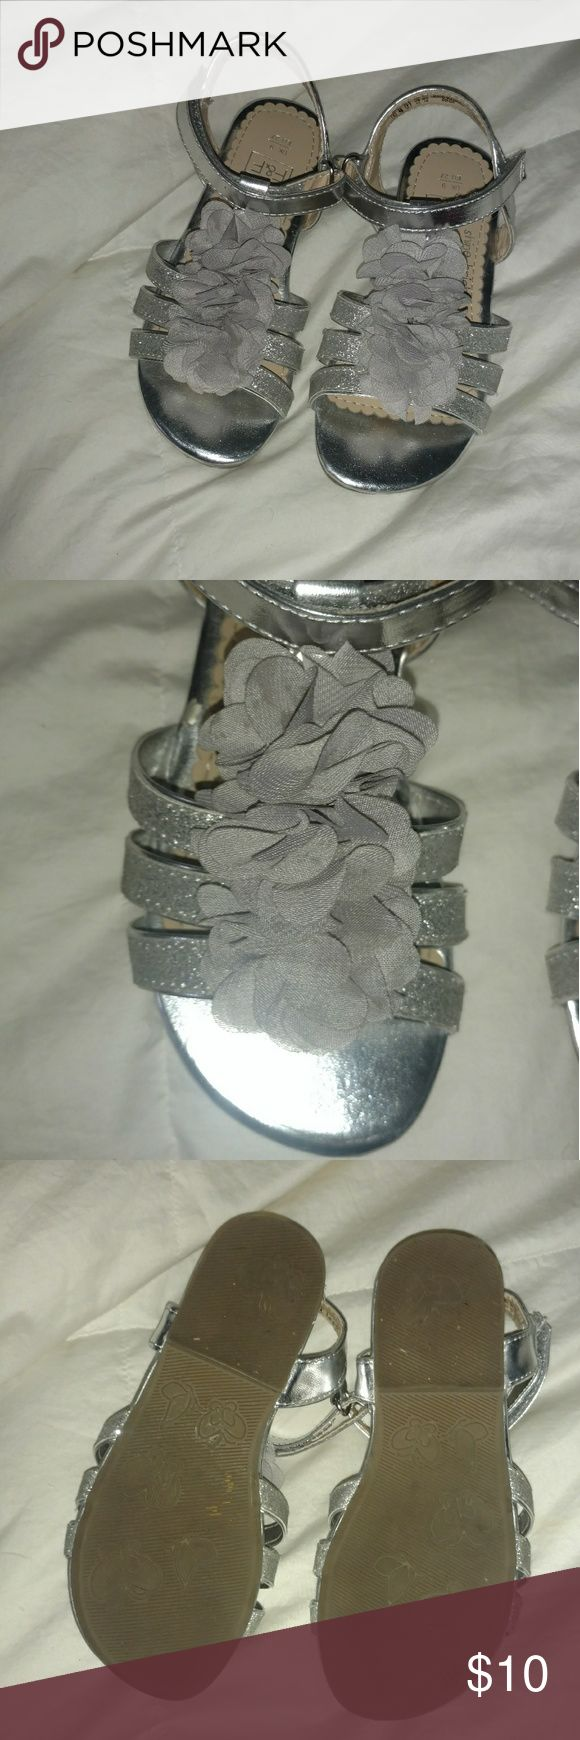 F&F girls silver sparkly sandals - size 10 EUC F&F girls silver sparkly sandals - size 10 EUC Super cute girls sandals. Floral detail, sparkly straps. Worn only once (see picture of bottoms) Dress (sz 4T) is also available for $25!! Bundle to save 10%!! F&F Shoes Sandals & Flip Flops